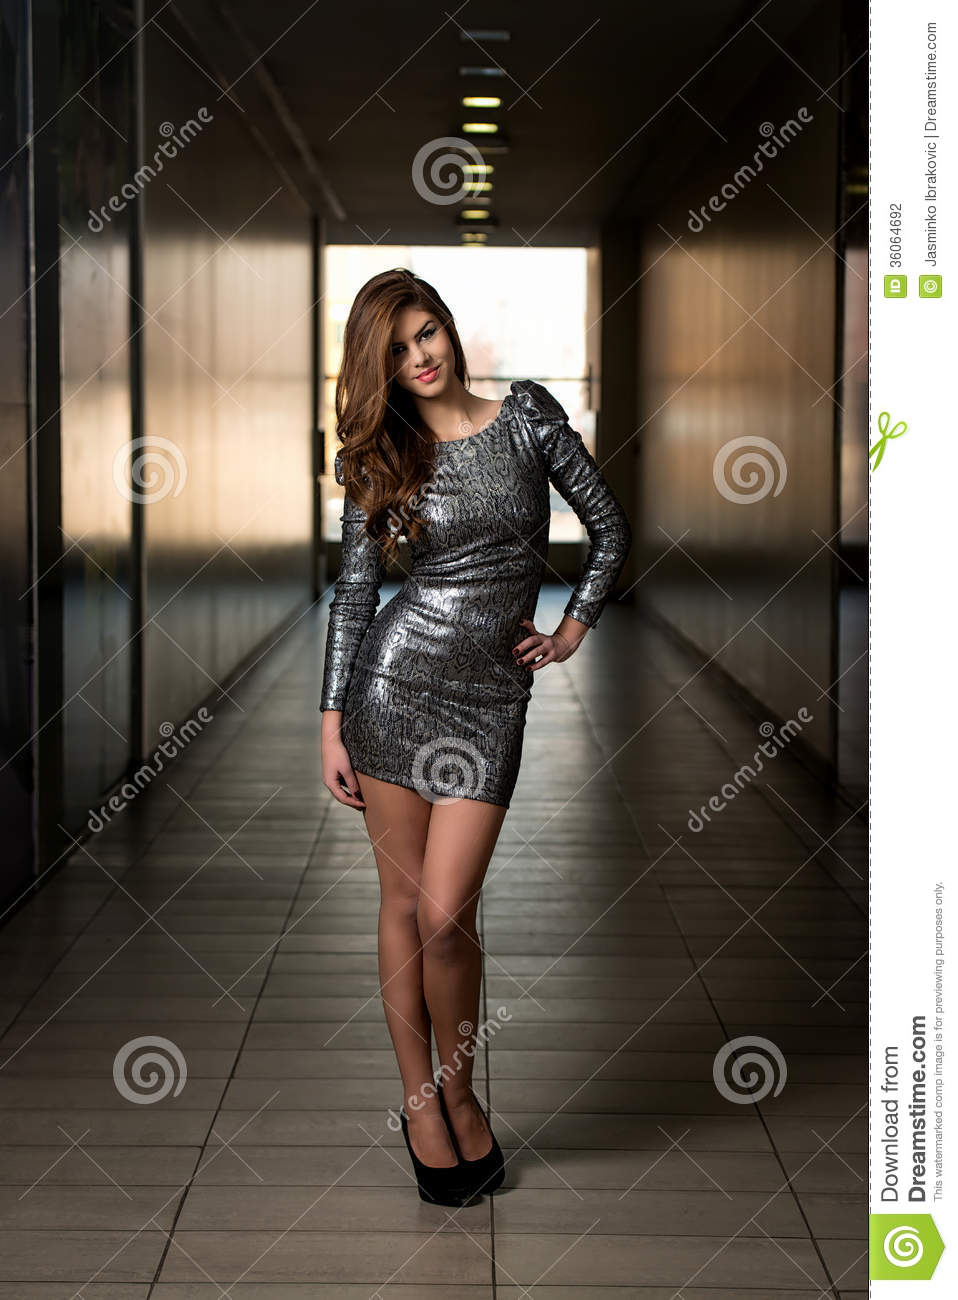 fashion model in silver dress stock photography image. Black Bedroom Furniture Sets. Home Design Ideas